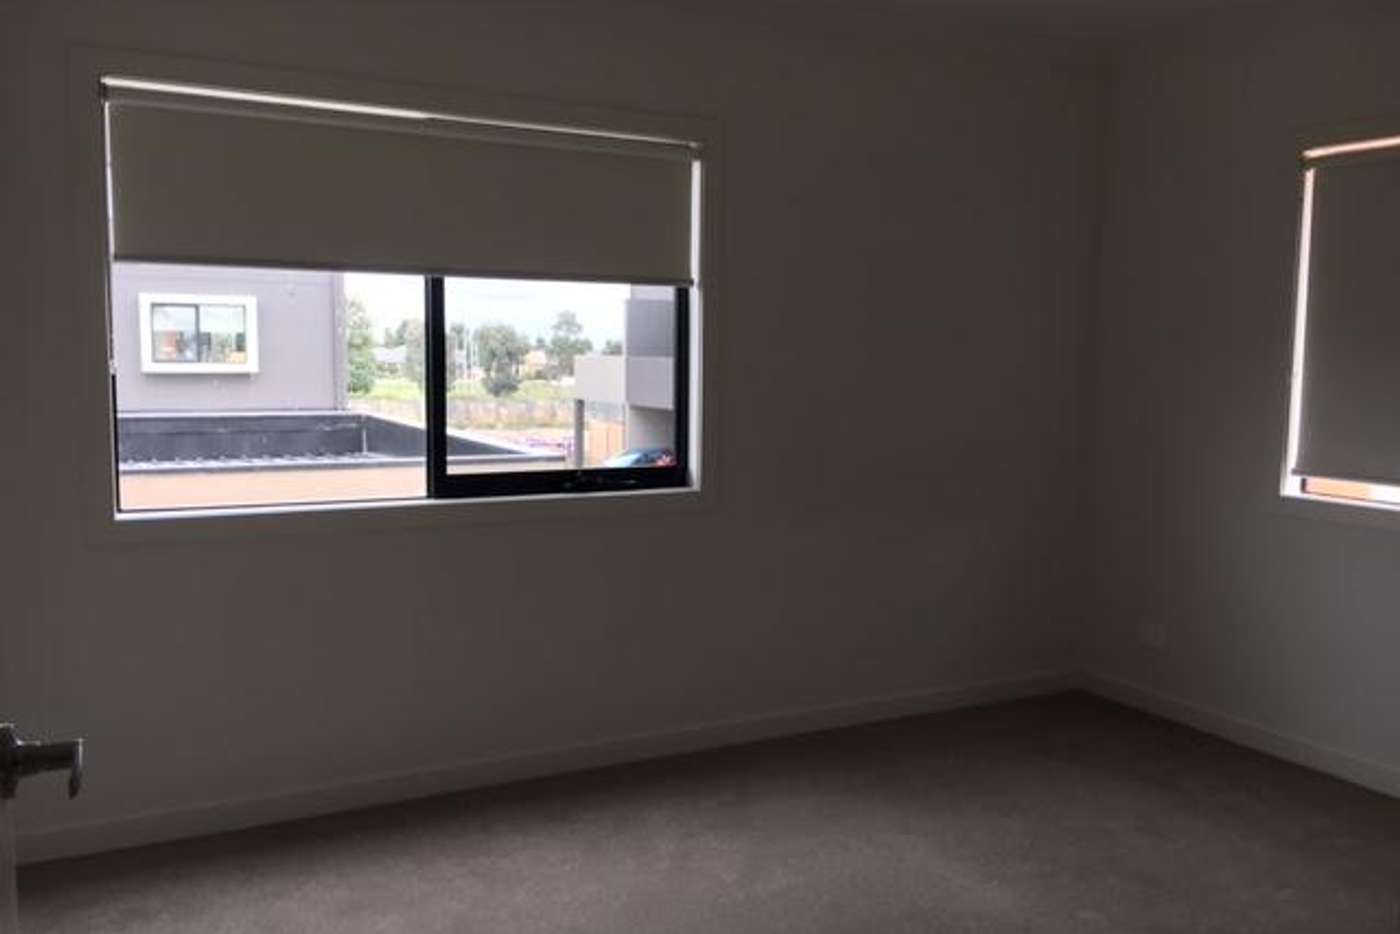 Seventh view of Homely townhouse listing, 73/1-15 Beddison Road, Craigieburn VIC 3064